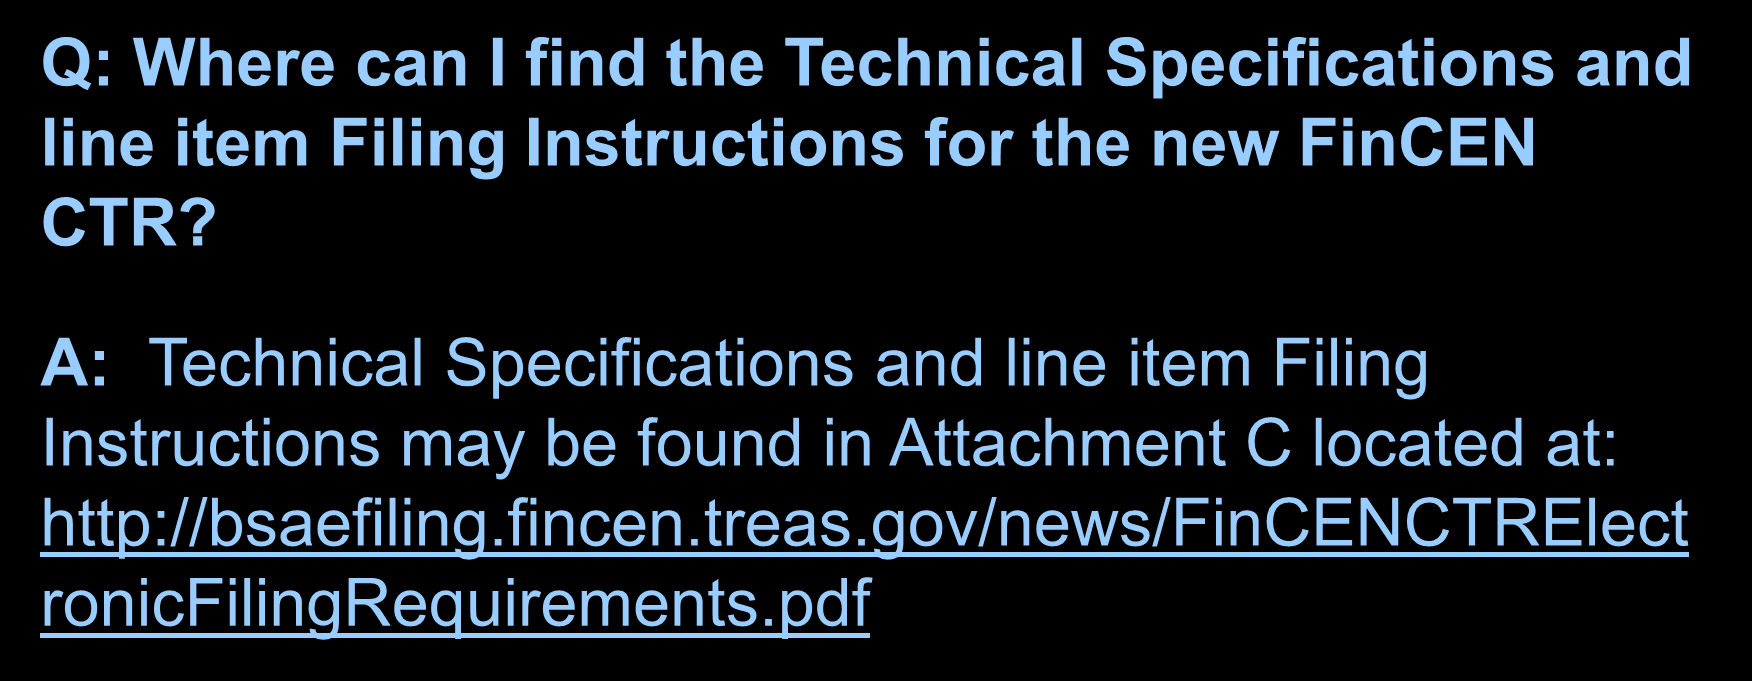 Frequently Asked Questions Q: Where can I find the Technical Specifications and line item Filing Instructions for the new FinCEN CTR?